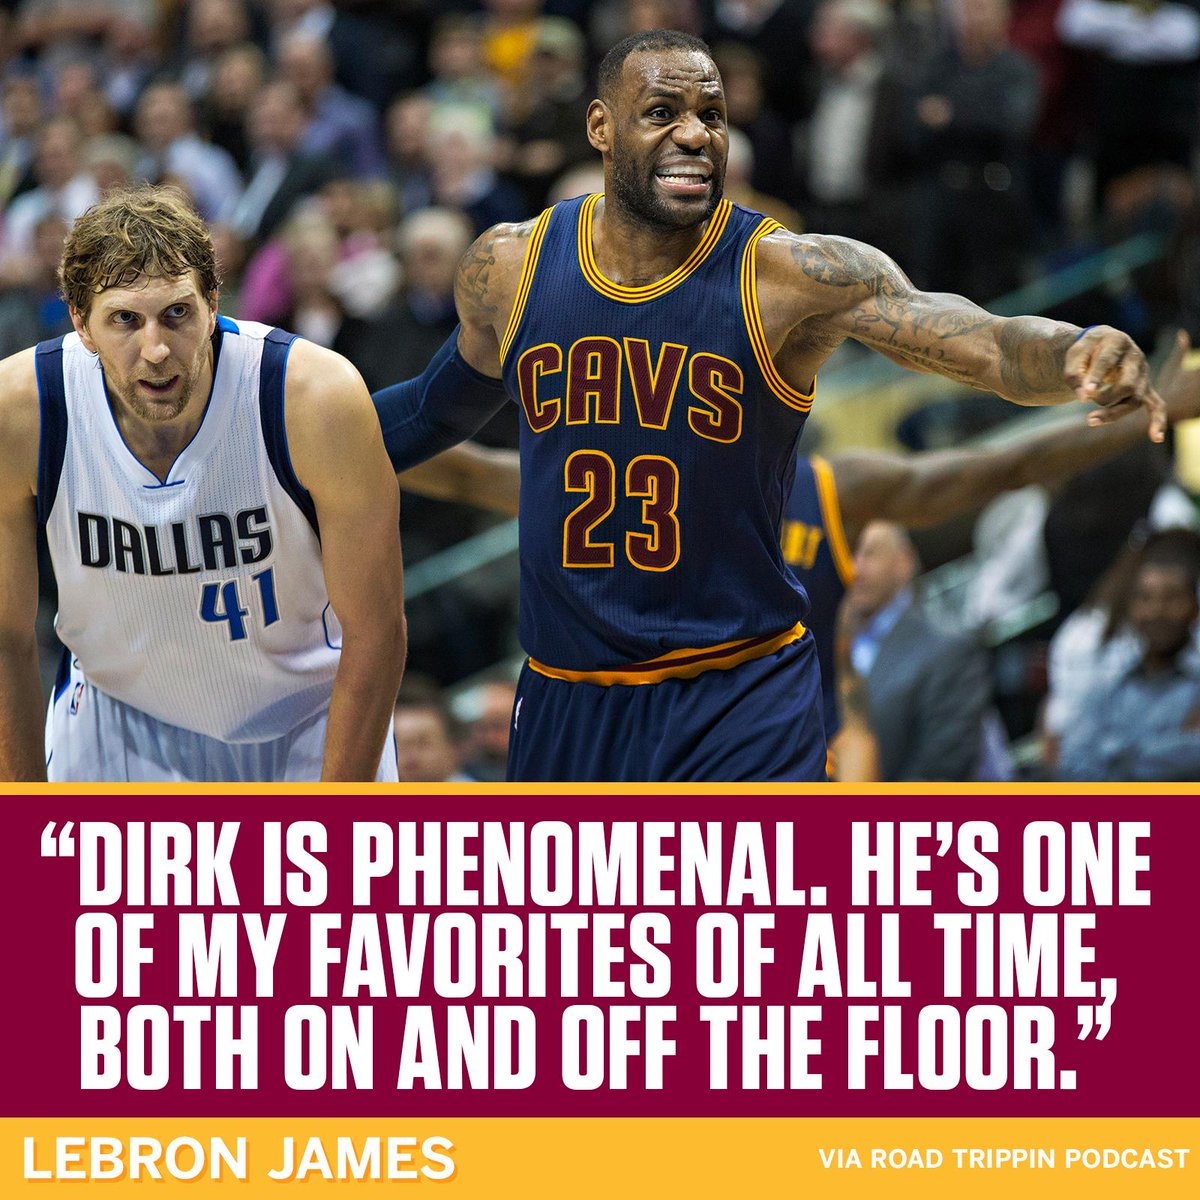 Dirk with a shoutout from The King.